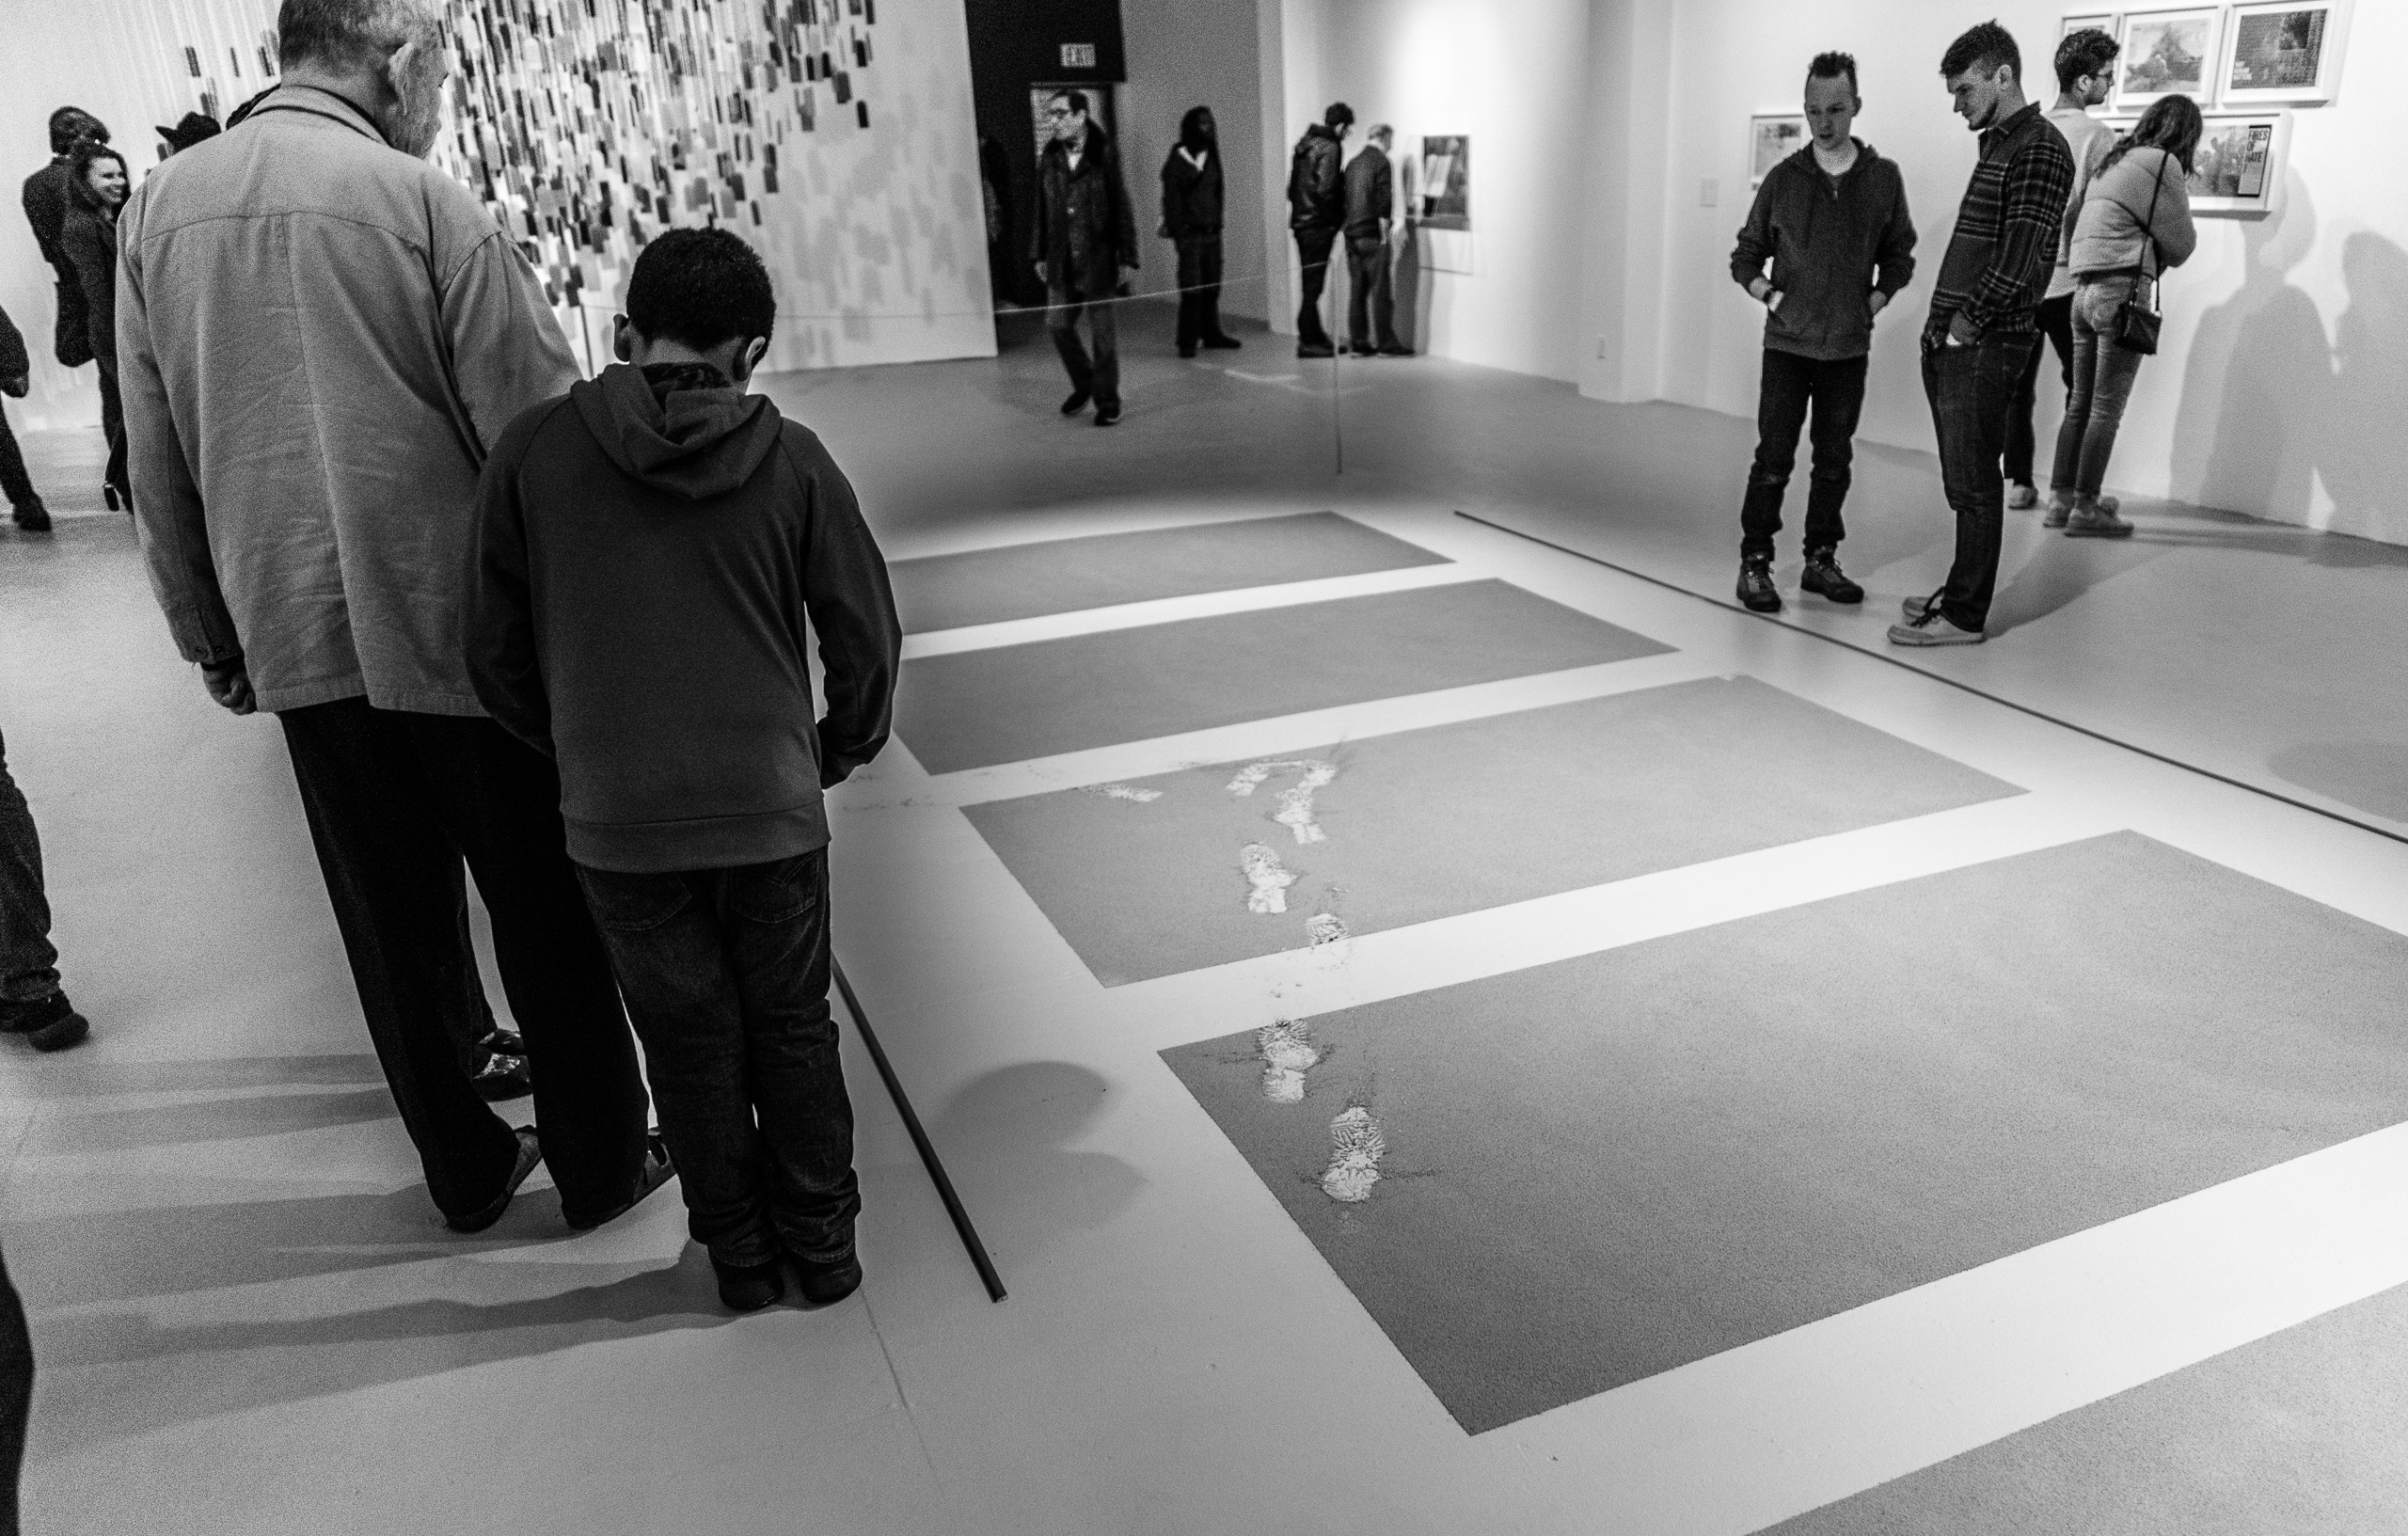 installation view at LACE (Los Angeles Contemporary Exhibitions) showing a grid of ashes on the gallery floor and accidental footprints walking across them